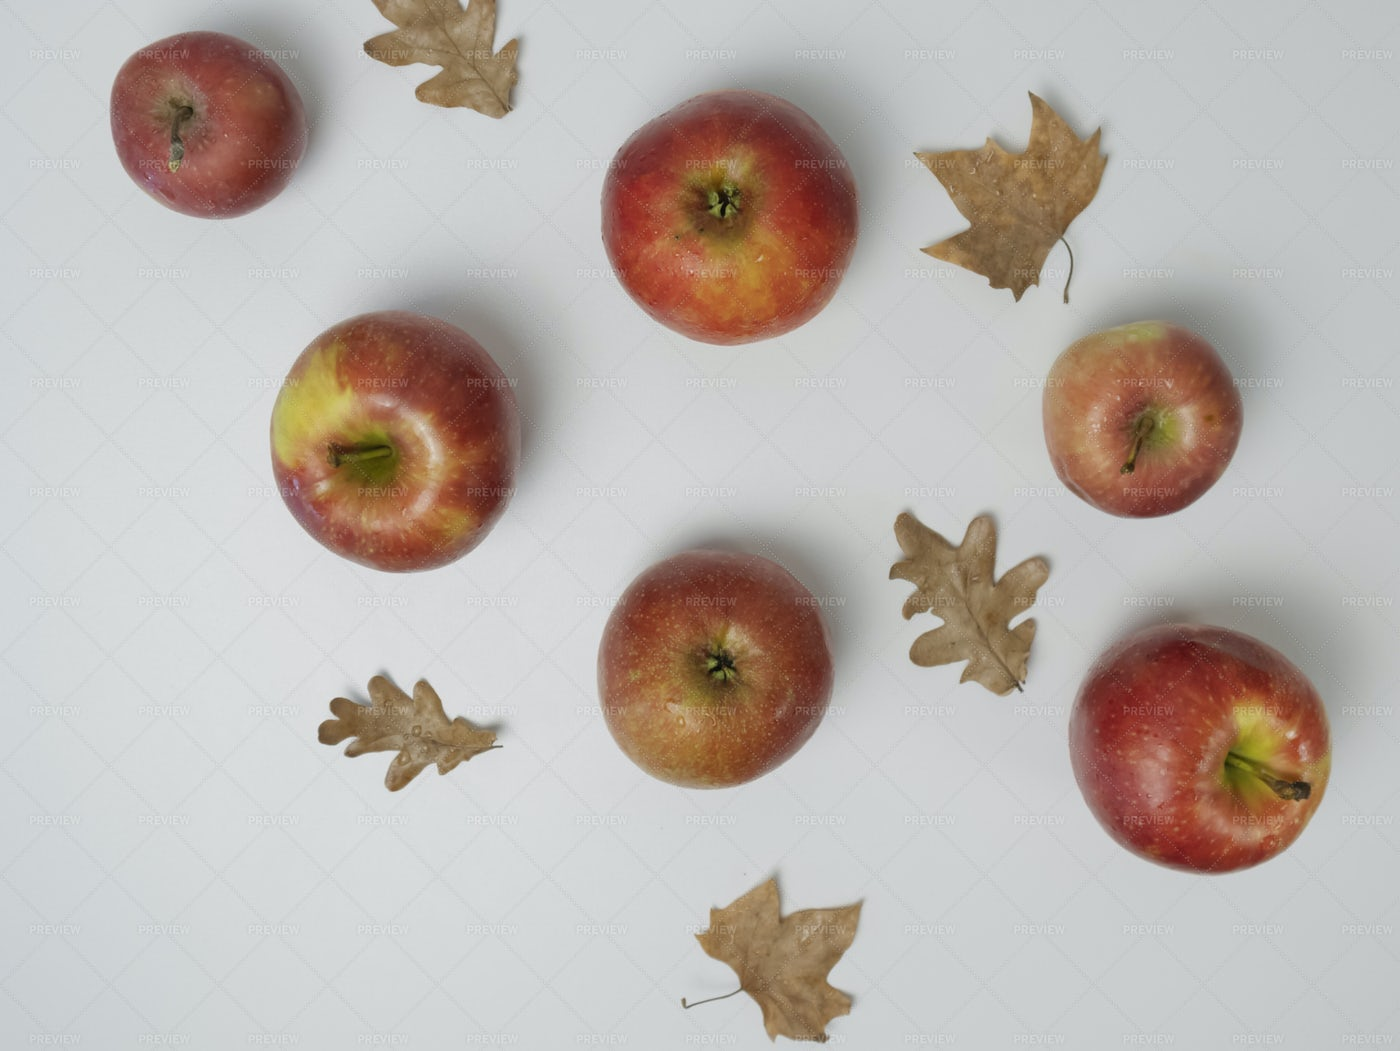 Apples With Autumn Leaves: Stock Photos